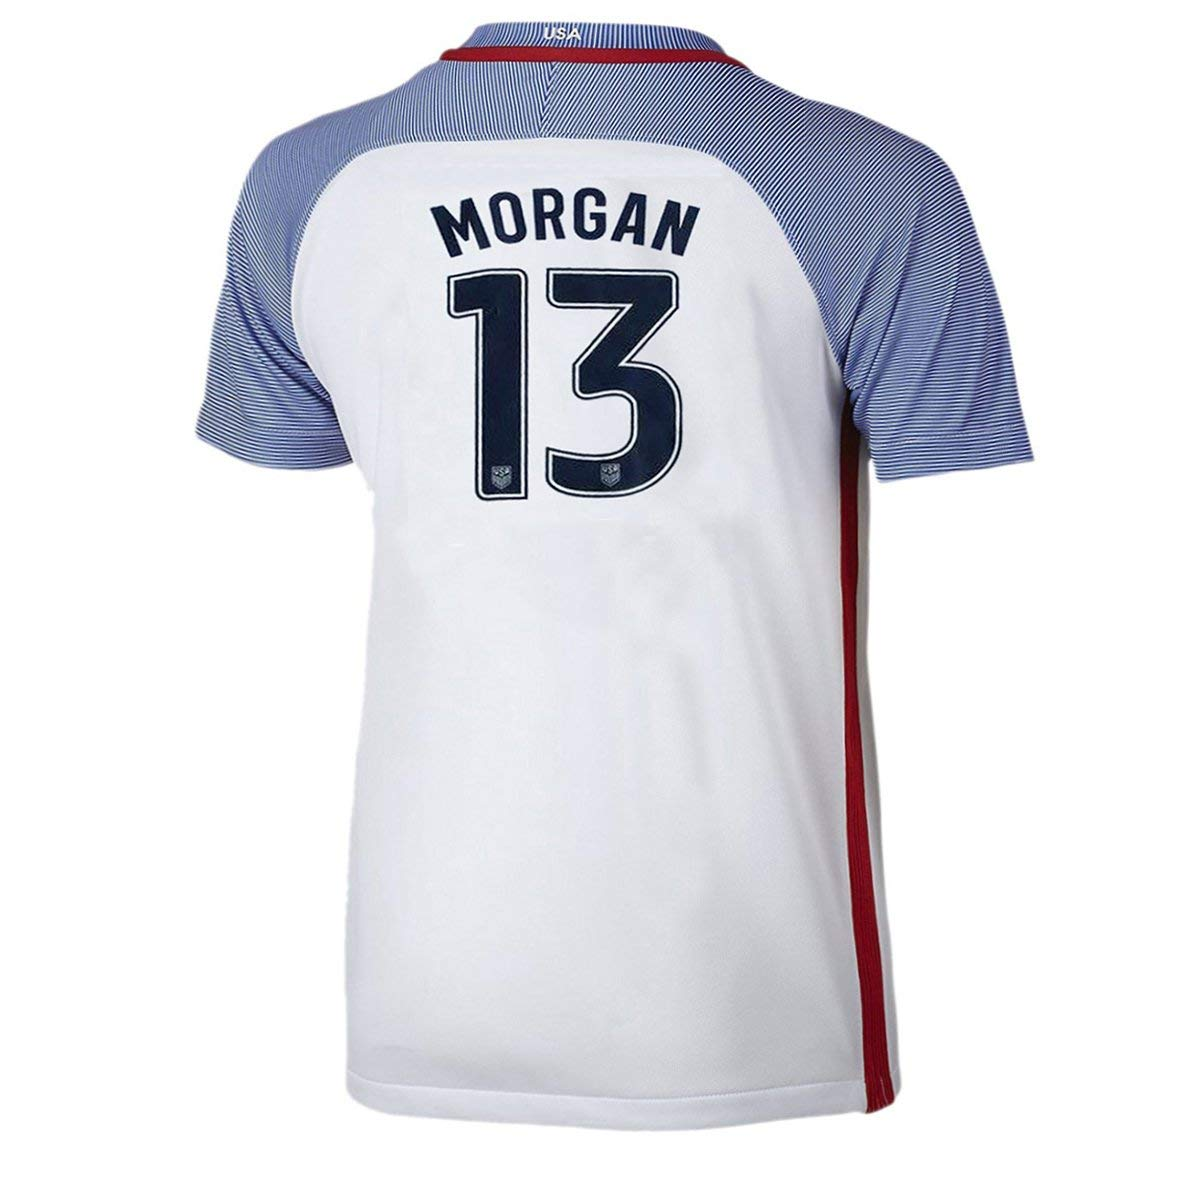 59026e821 Get Quotations · Morgan  13 USA National Women s Alex Home Jersey White